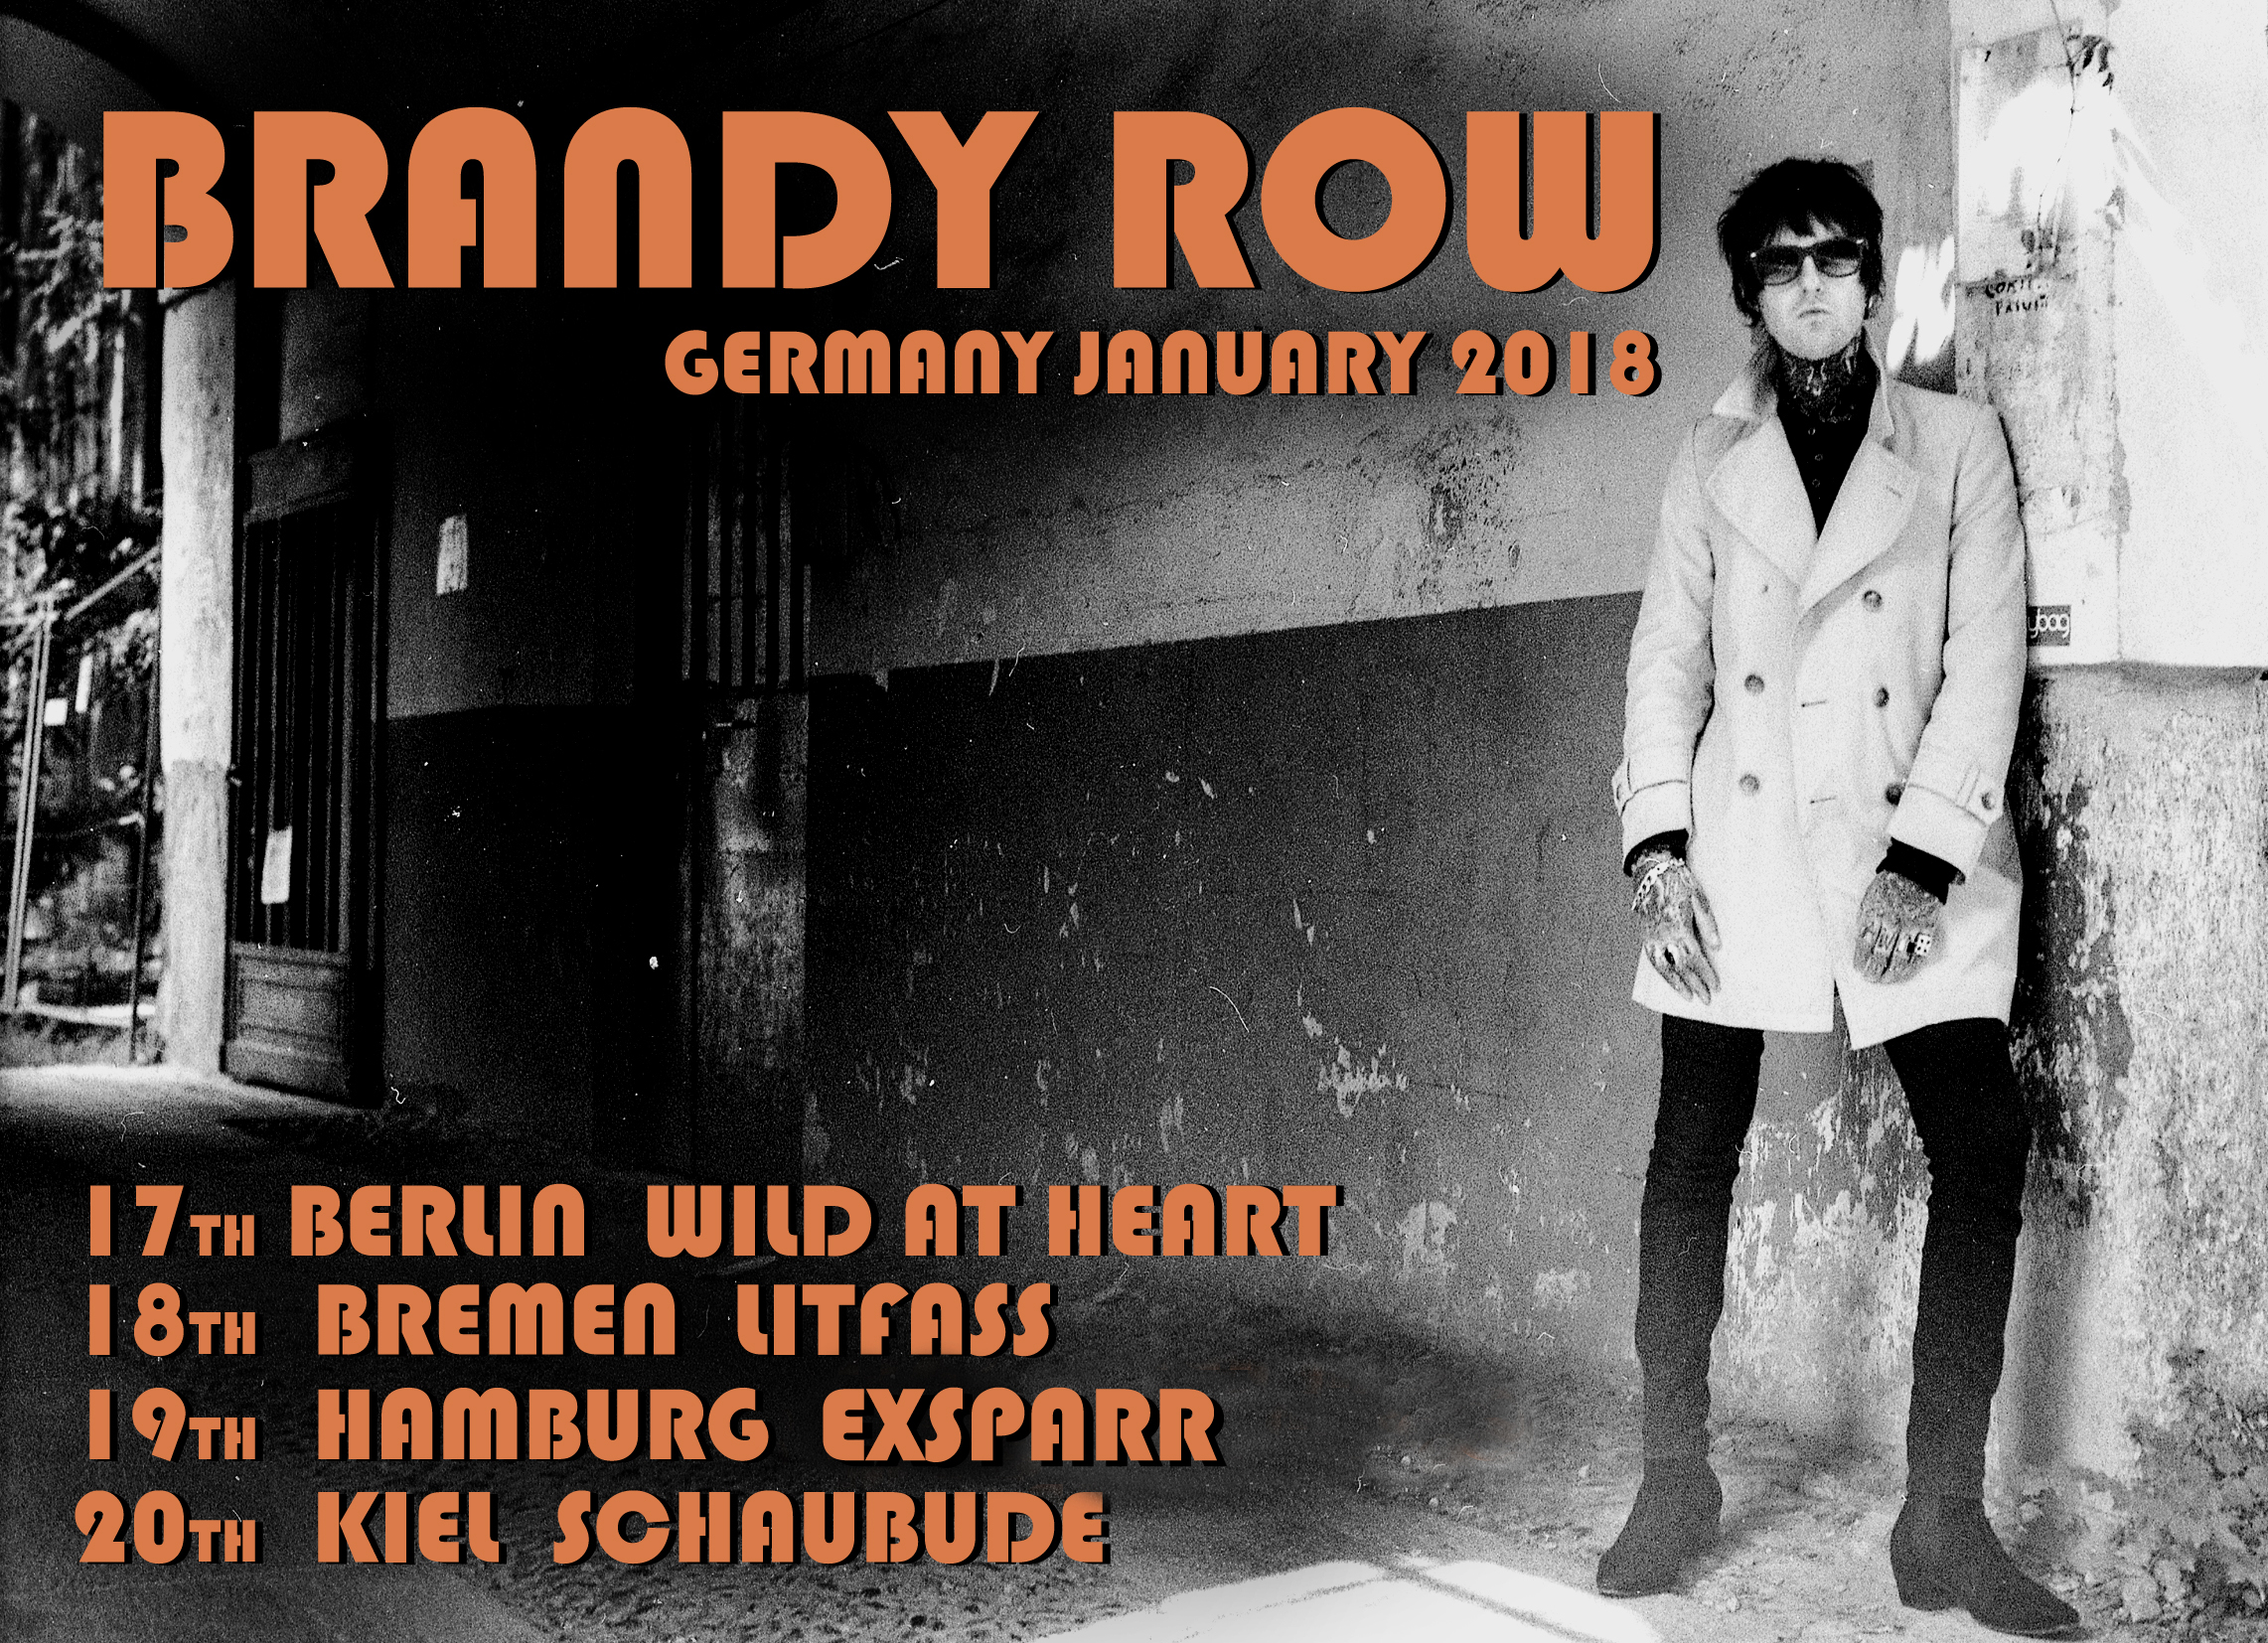 Berlin Tomorrow! just been confirmed for Tide Radio Live this Friday at 2pm in Hamburg